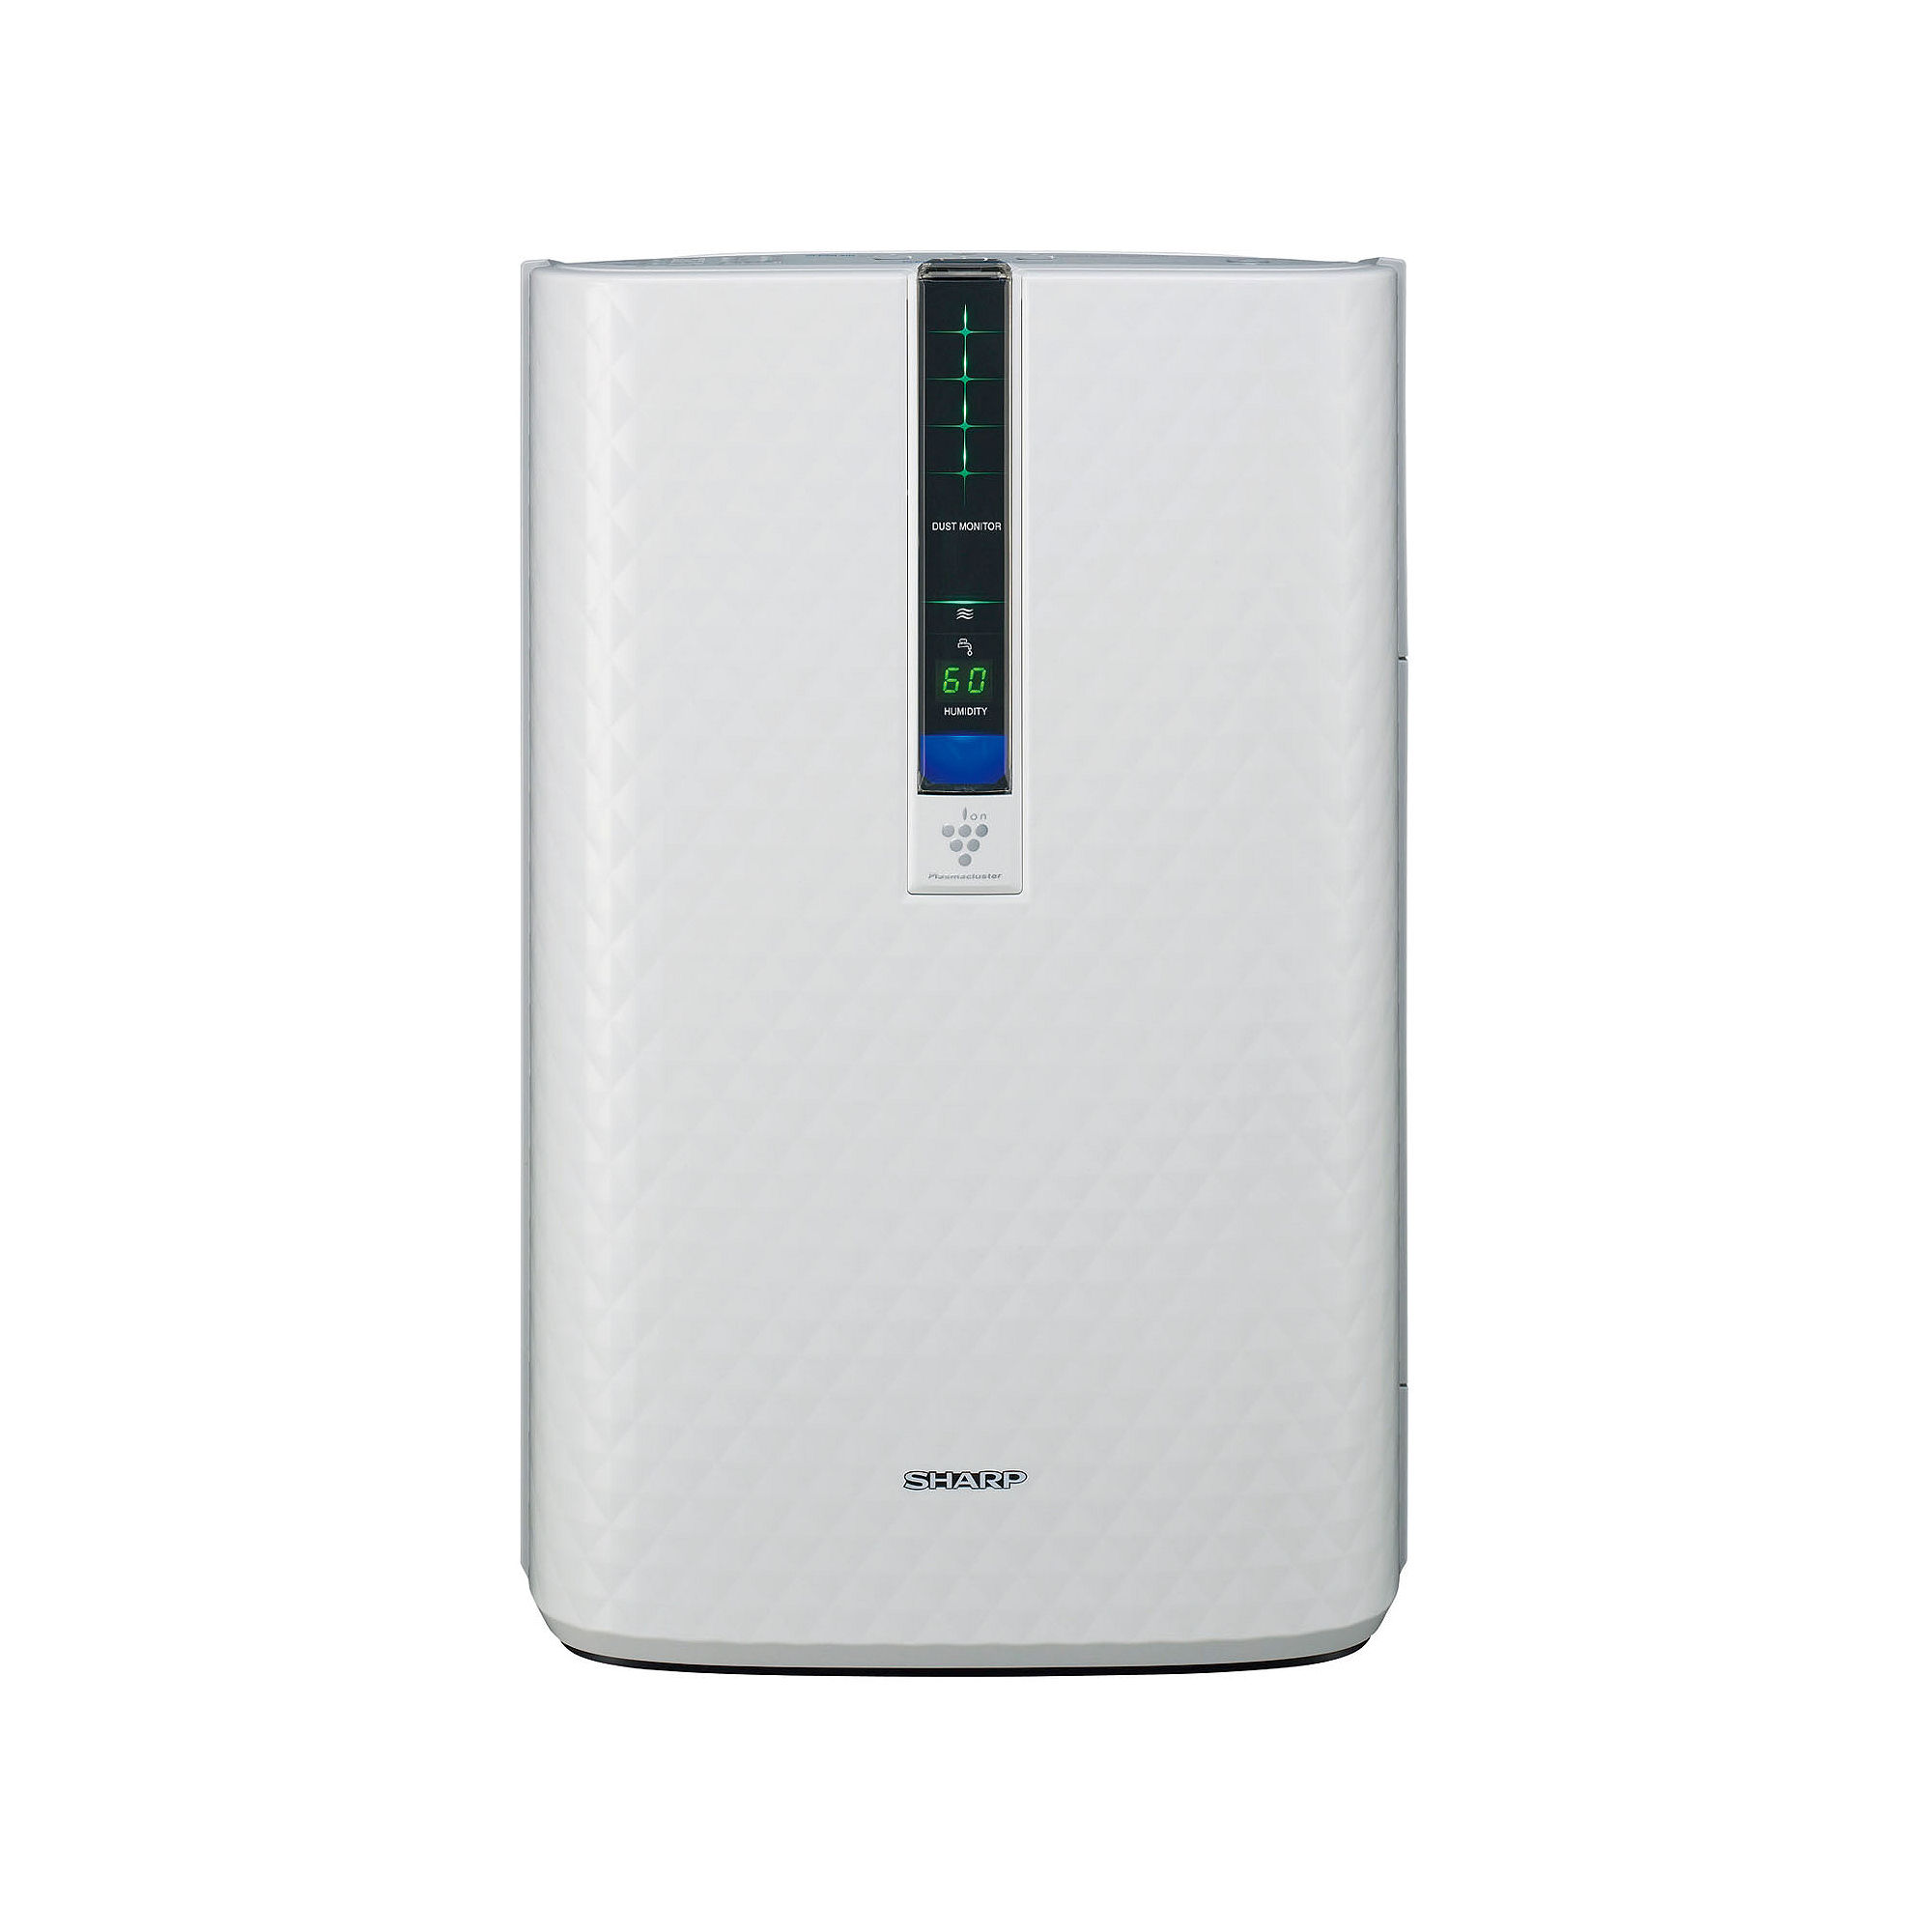 Triple Action Plasmacluster Air Purifier with Humidifying Function (254 sq. ft.)